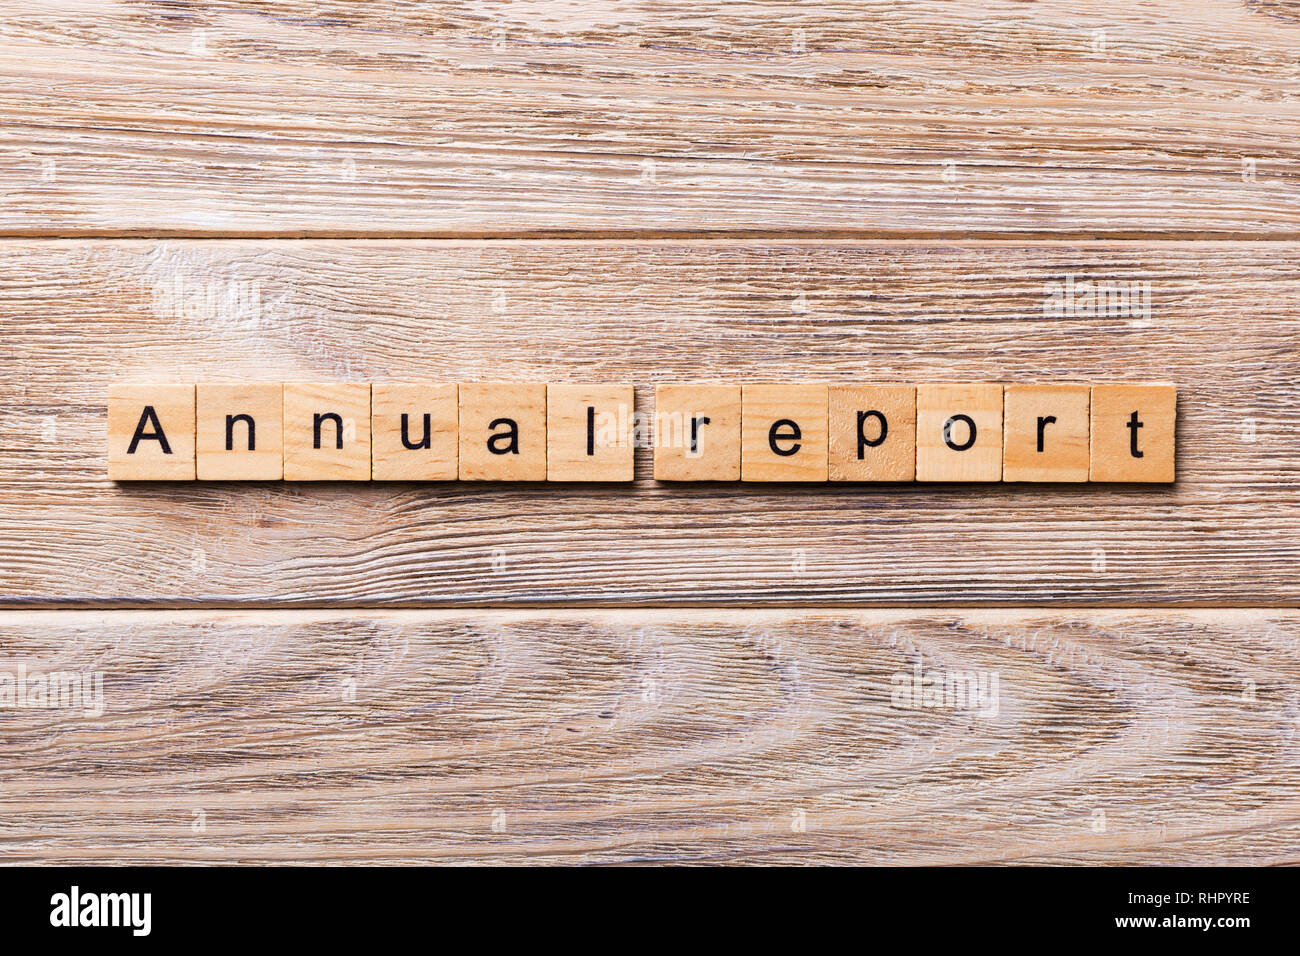 Annual report word written on wood block. Annual report text on wooden table for your desing, concept. - Stock Image